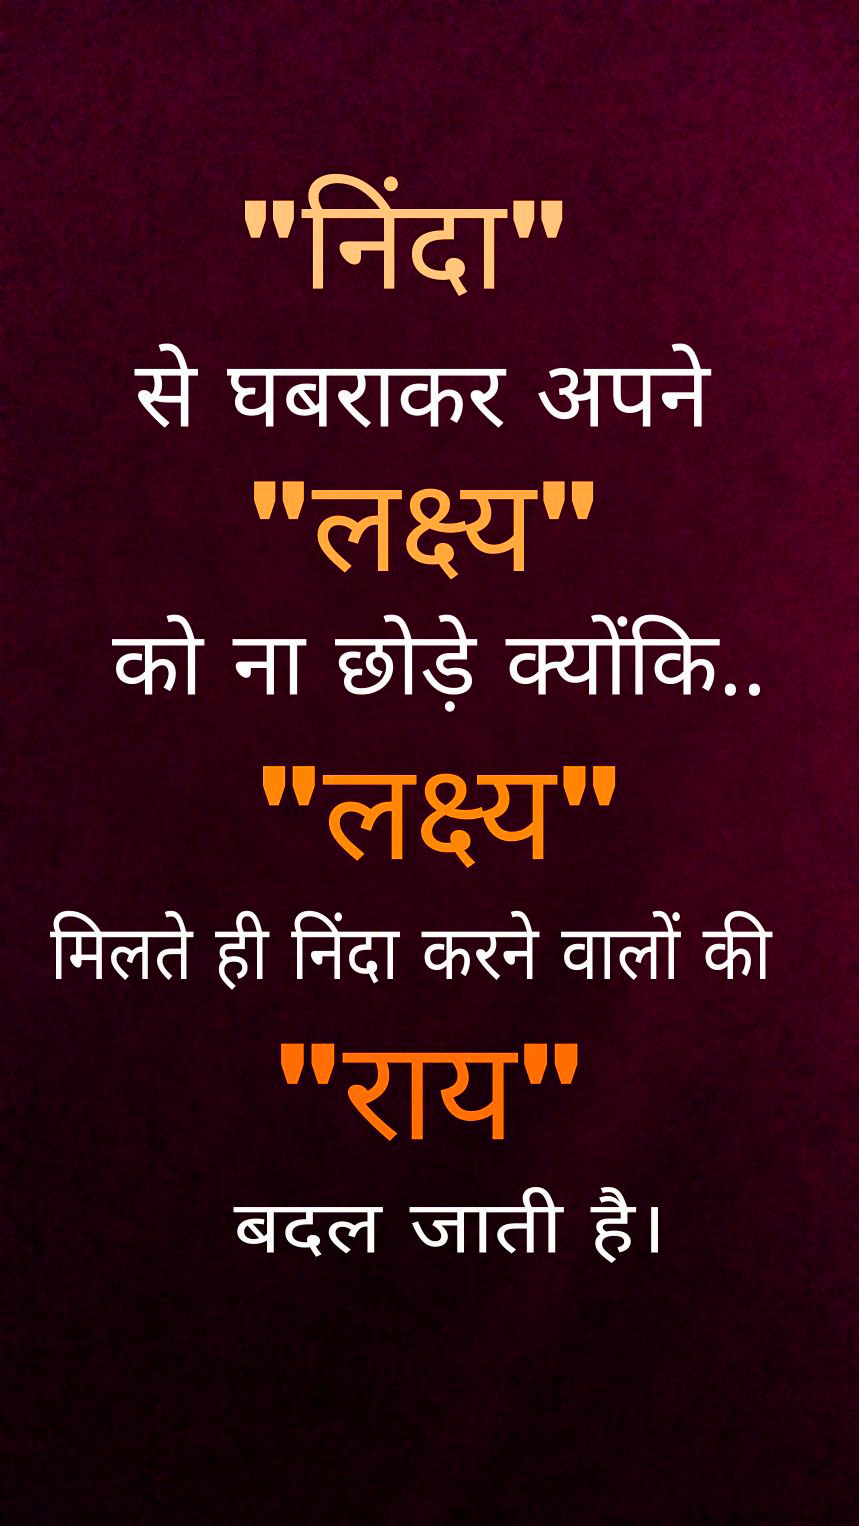 111+ hindi motivational quotes images for whatsapp